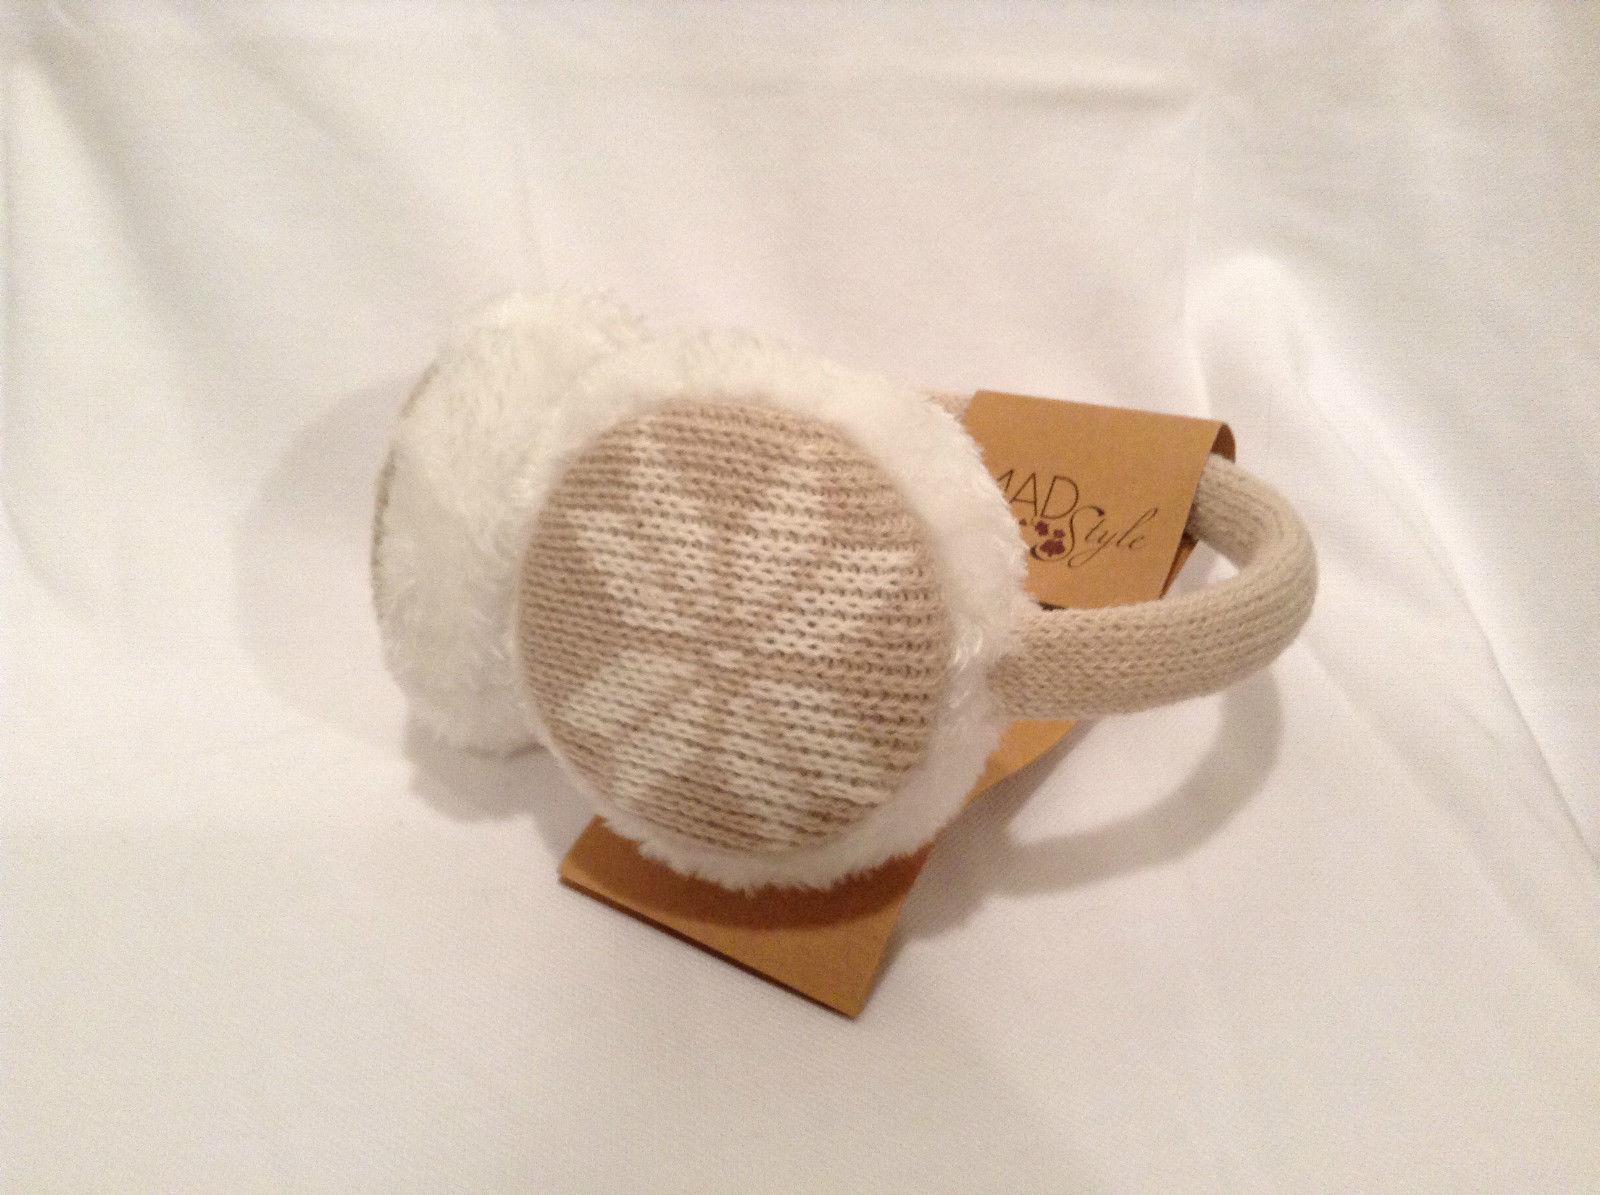 NEW Tan White Ear Muffs Warmers Knit Faux Fur Inside Snowflake Design One Size